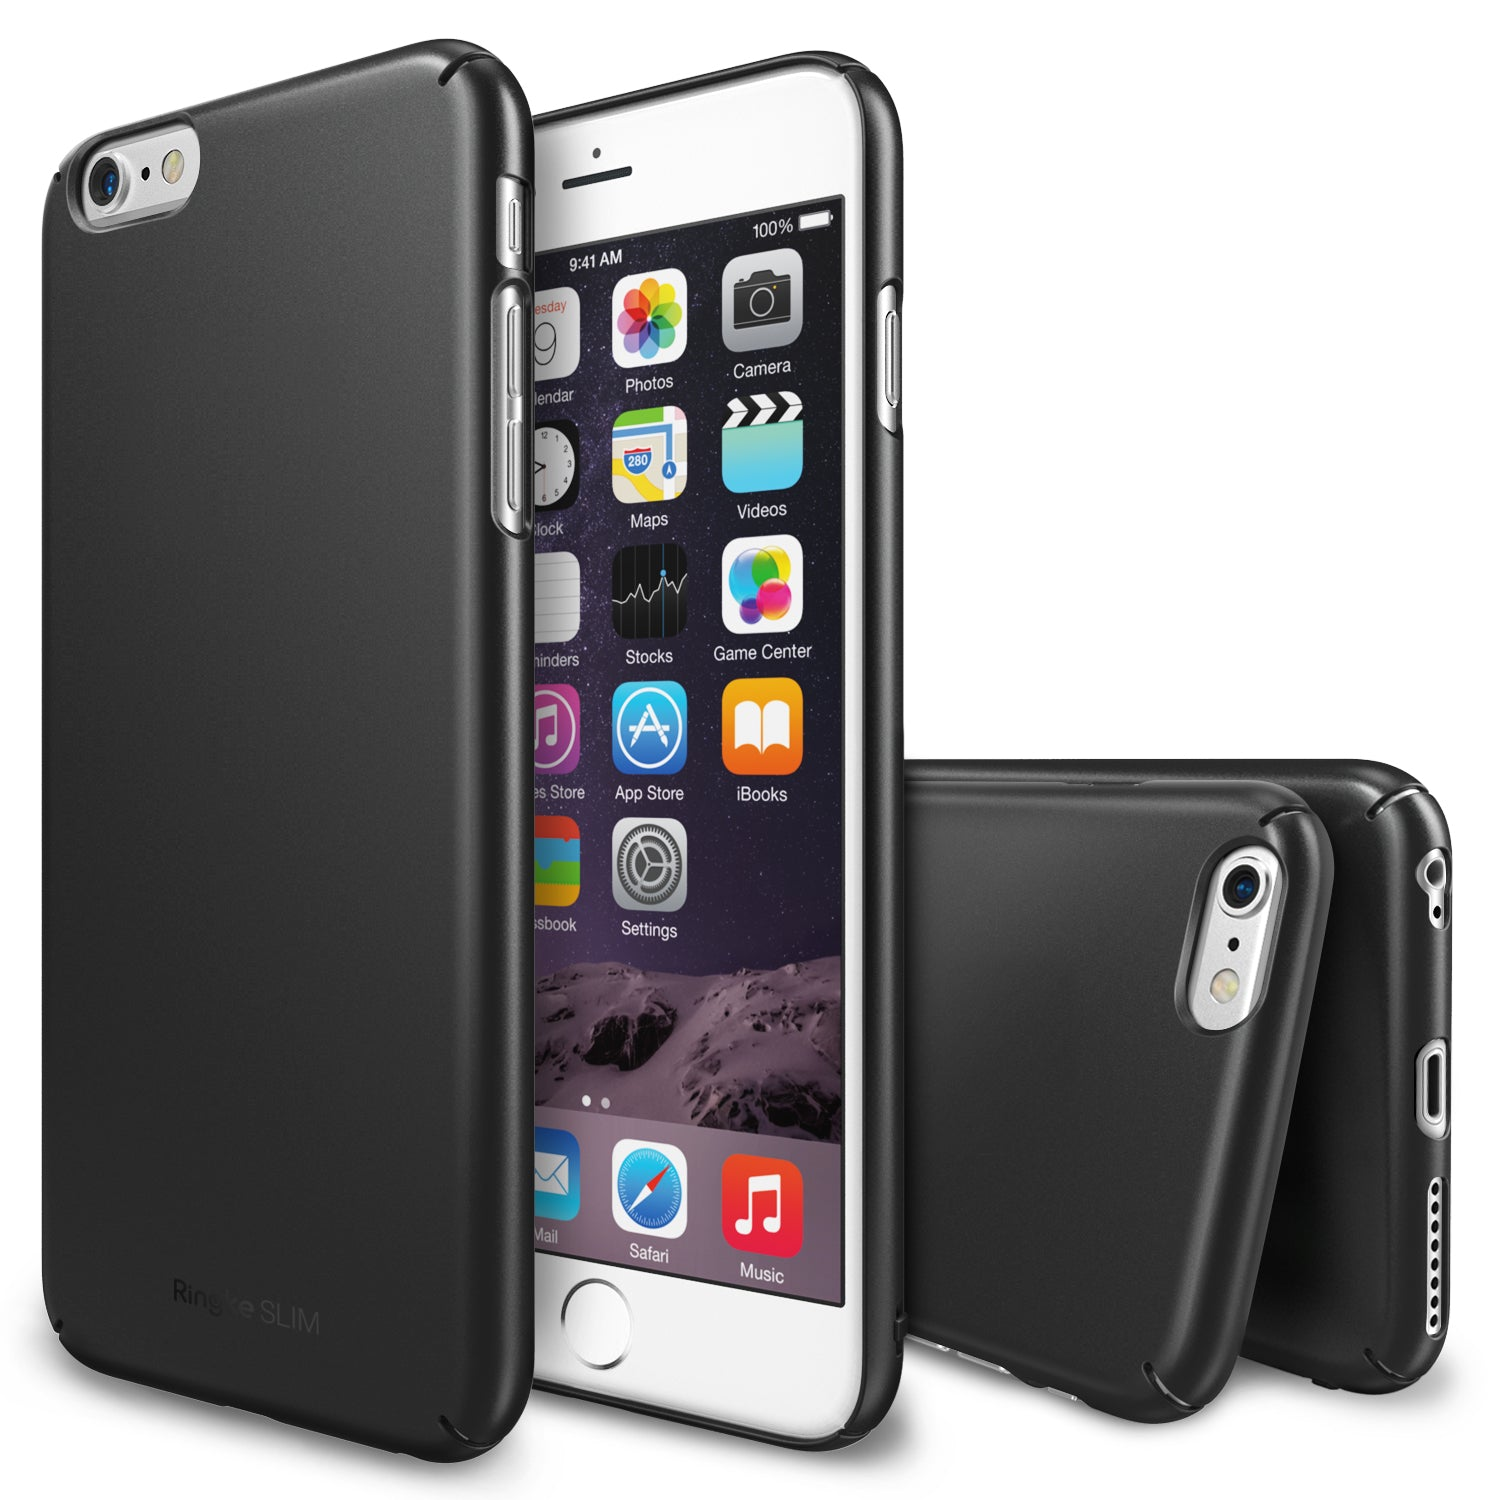 ringke slim lightweight hard pc thin case cover for iphone 6 plus main gun metal